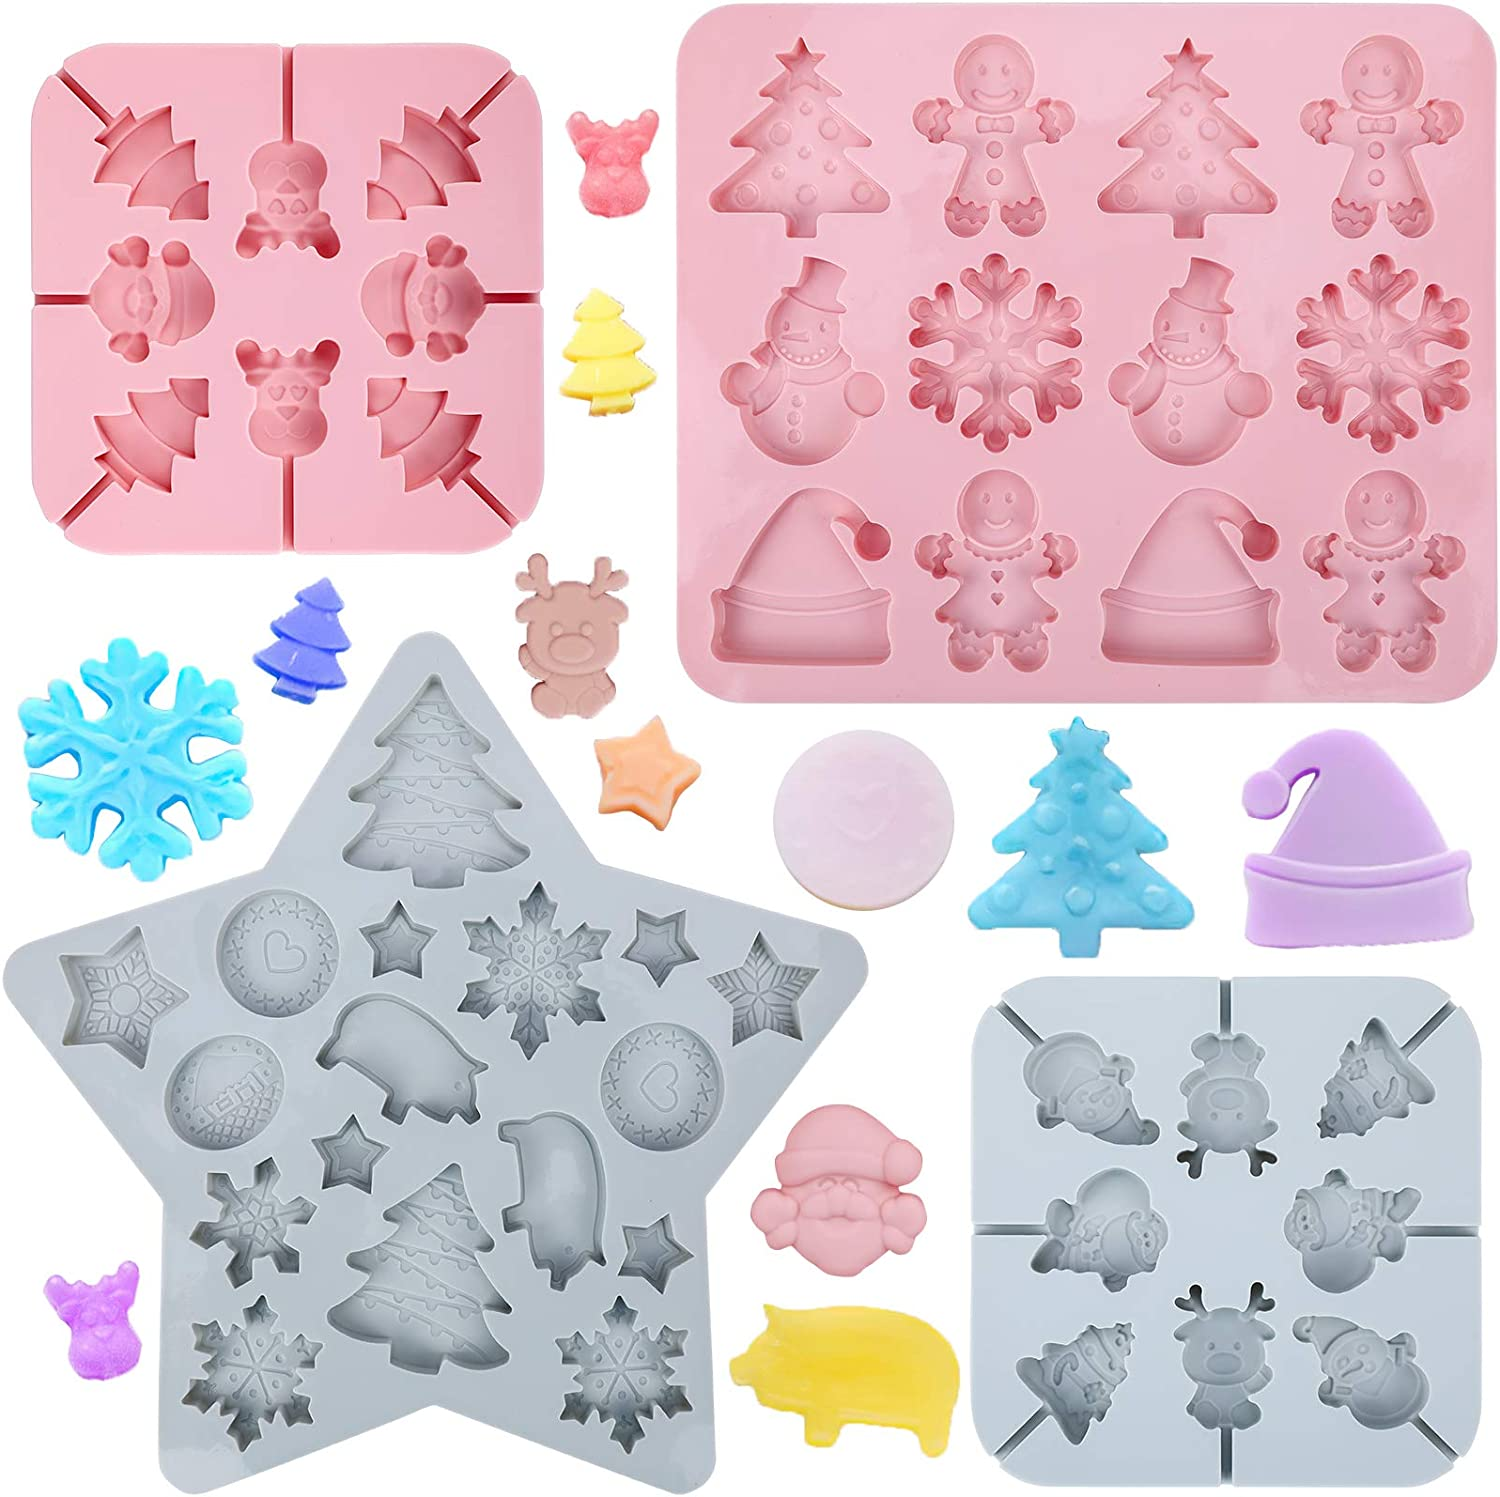 Konsait 4 Pack Christmas Silicone Moulds, Snowflake Snowman Christmas Tree Hat Reindeer Piggie Santa Candy Chocolate lollipop Silicone Molds, Cookies Baking Tools for Xmas Decorations Party Supplies